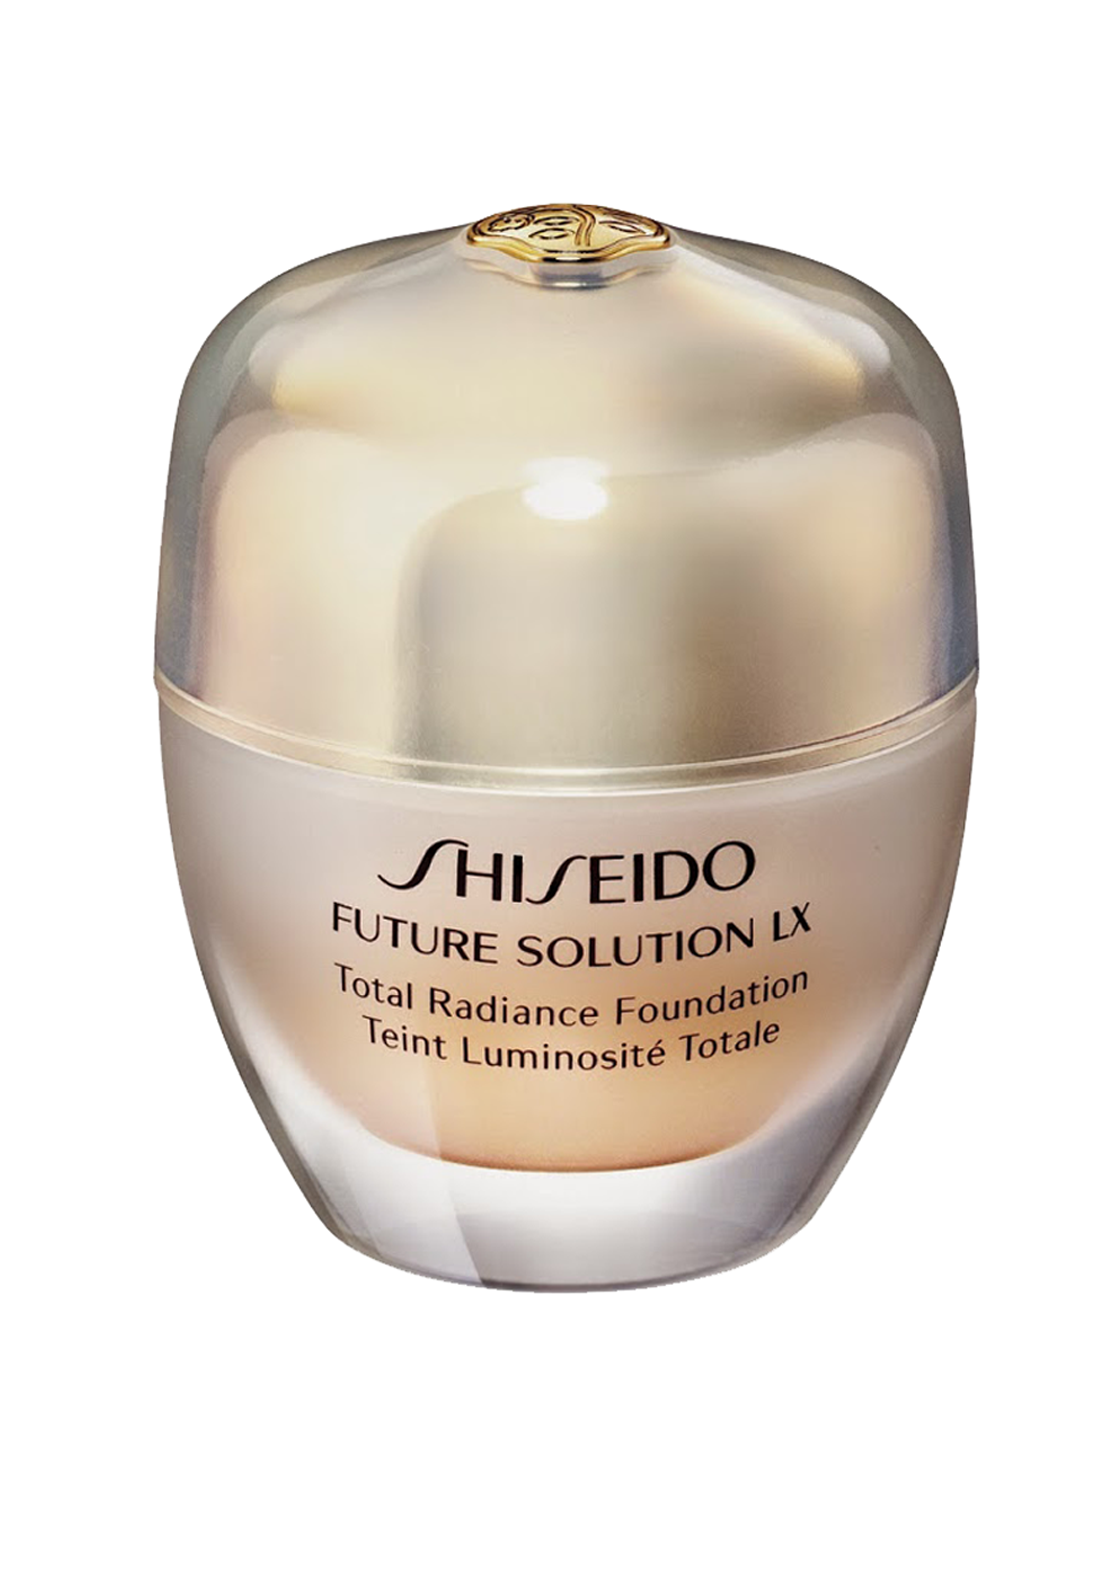 Shiseido Future Solution LX Total Radiance Foundation SPF15, Natural Light Ivory 120